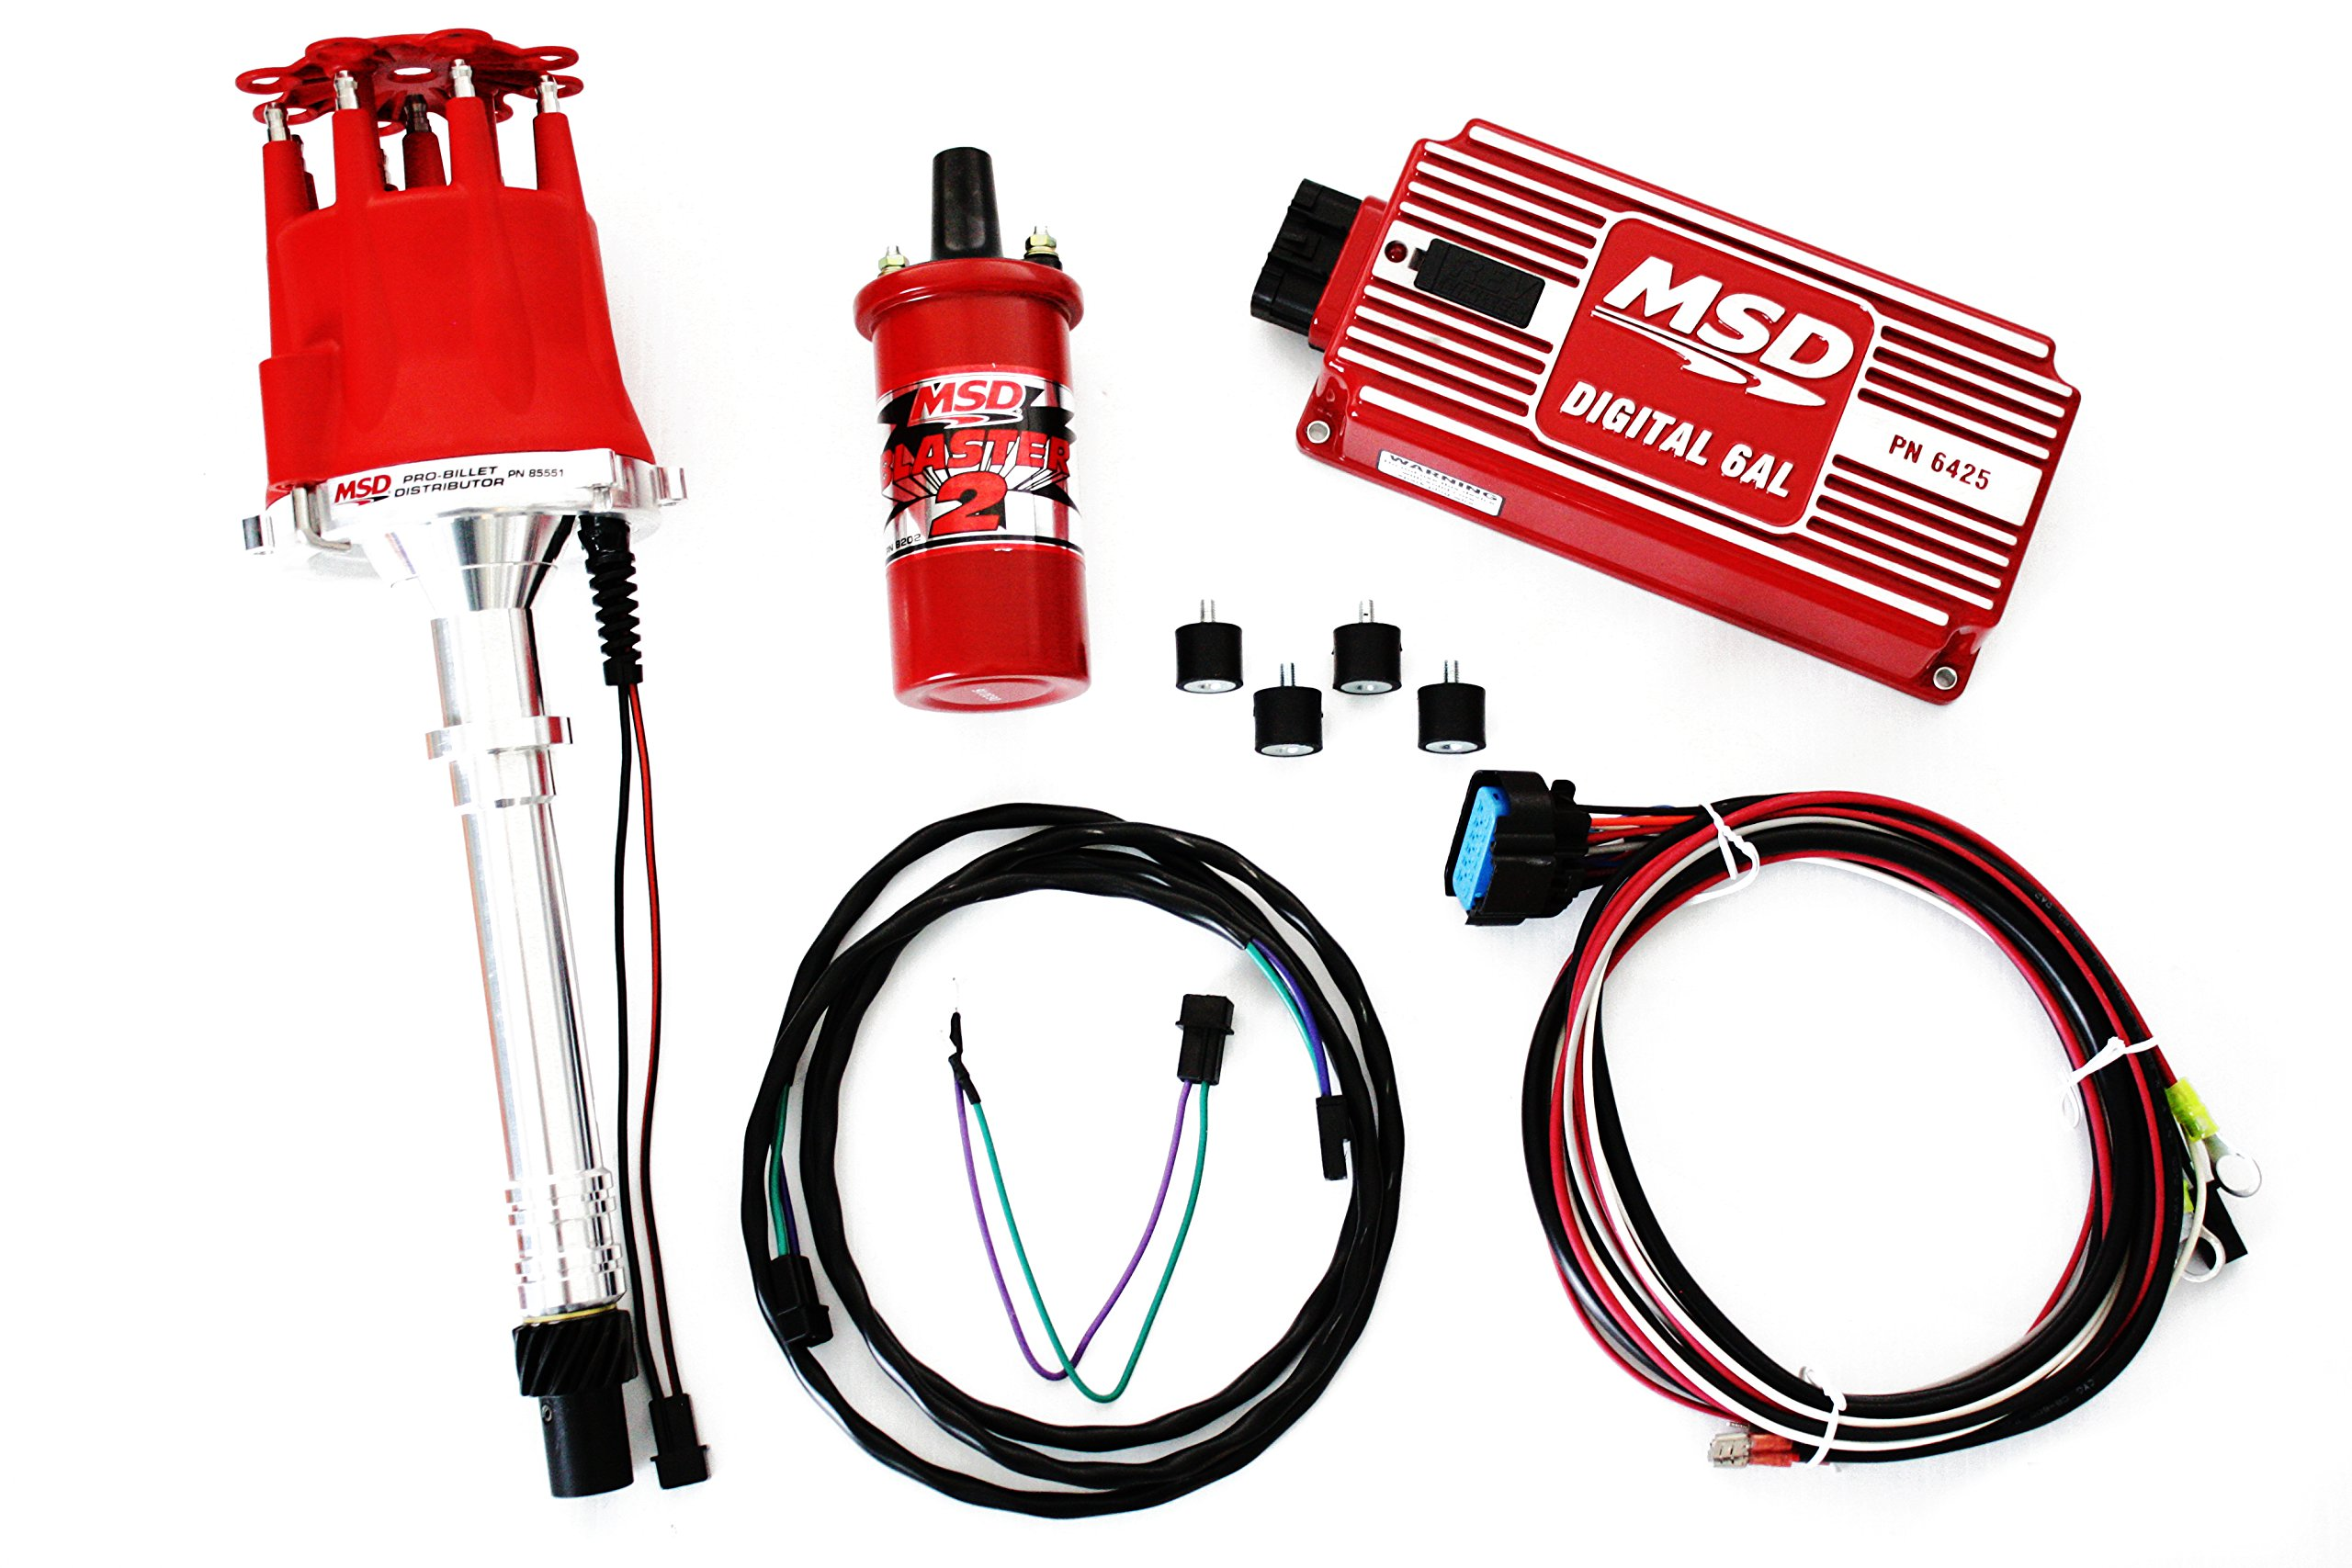 SBC/BBC MSD Ignition Digital 6AL Box w/Pro Billet Distributor & Blaster II Coil by CCR